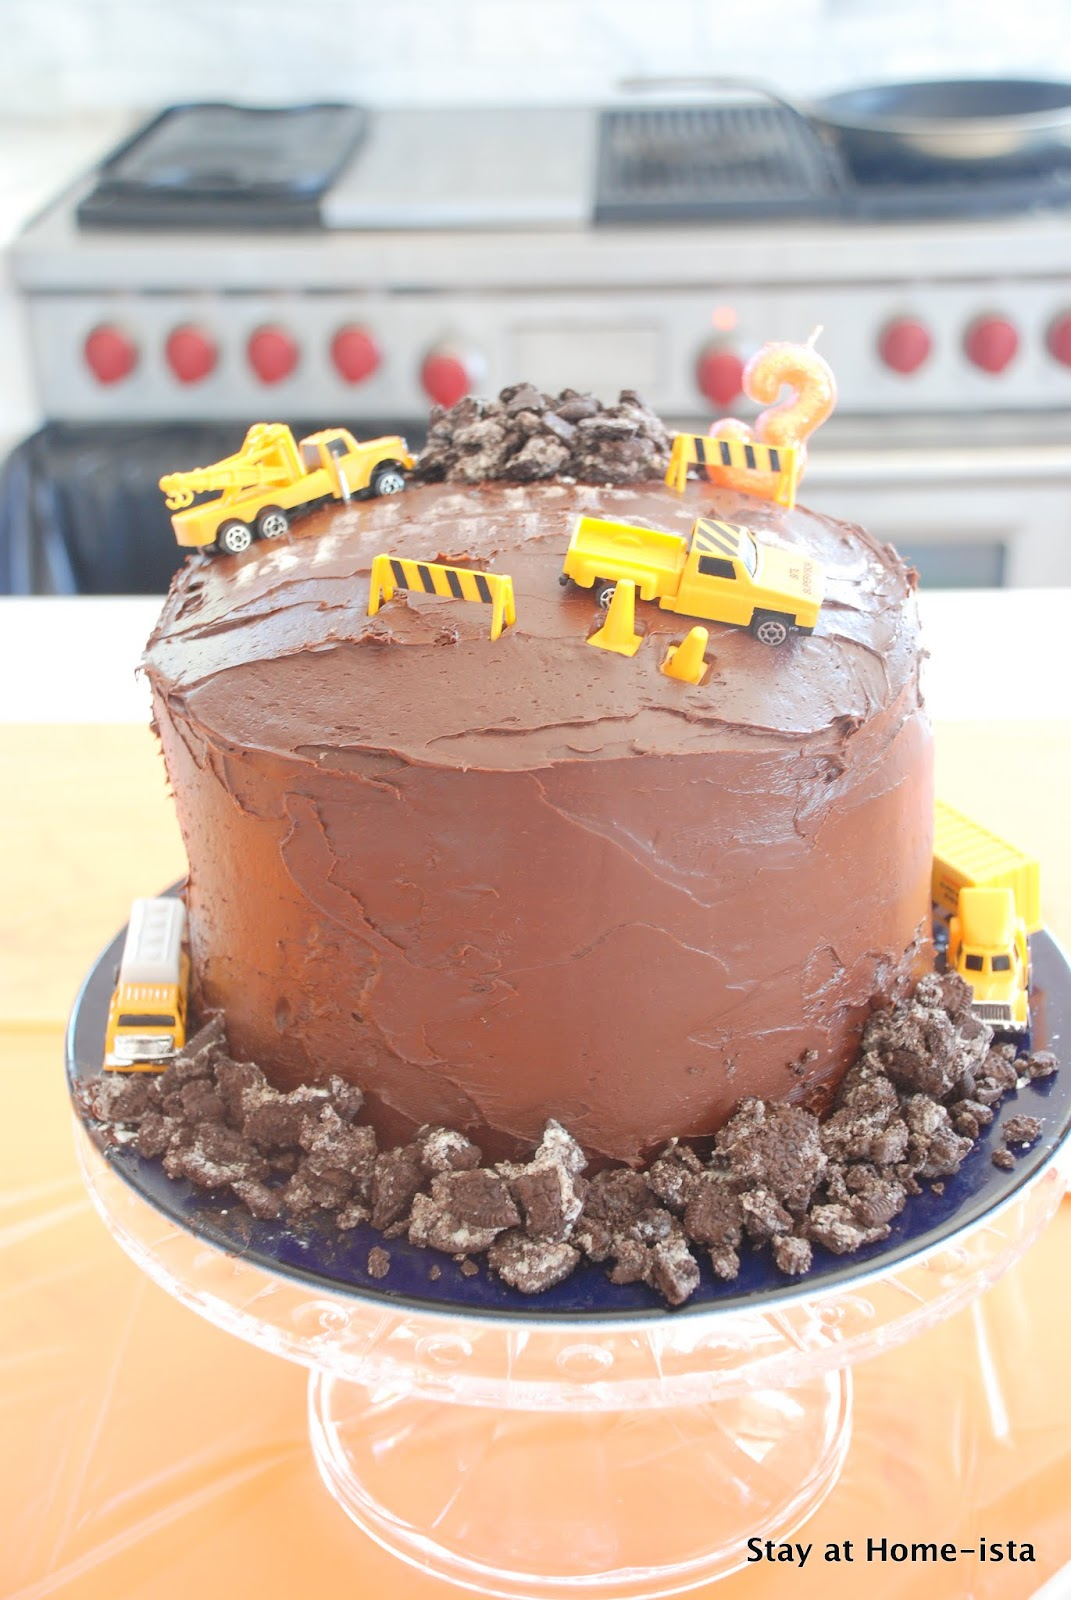 stay at home ista construction machine birthday cake tutorial chocolate construction truck cake with cookie rocks and dirt